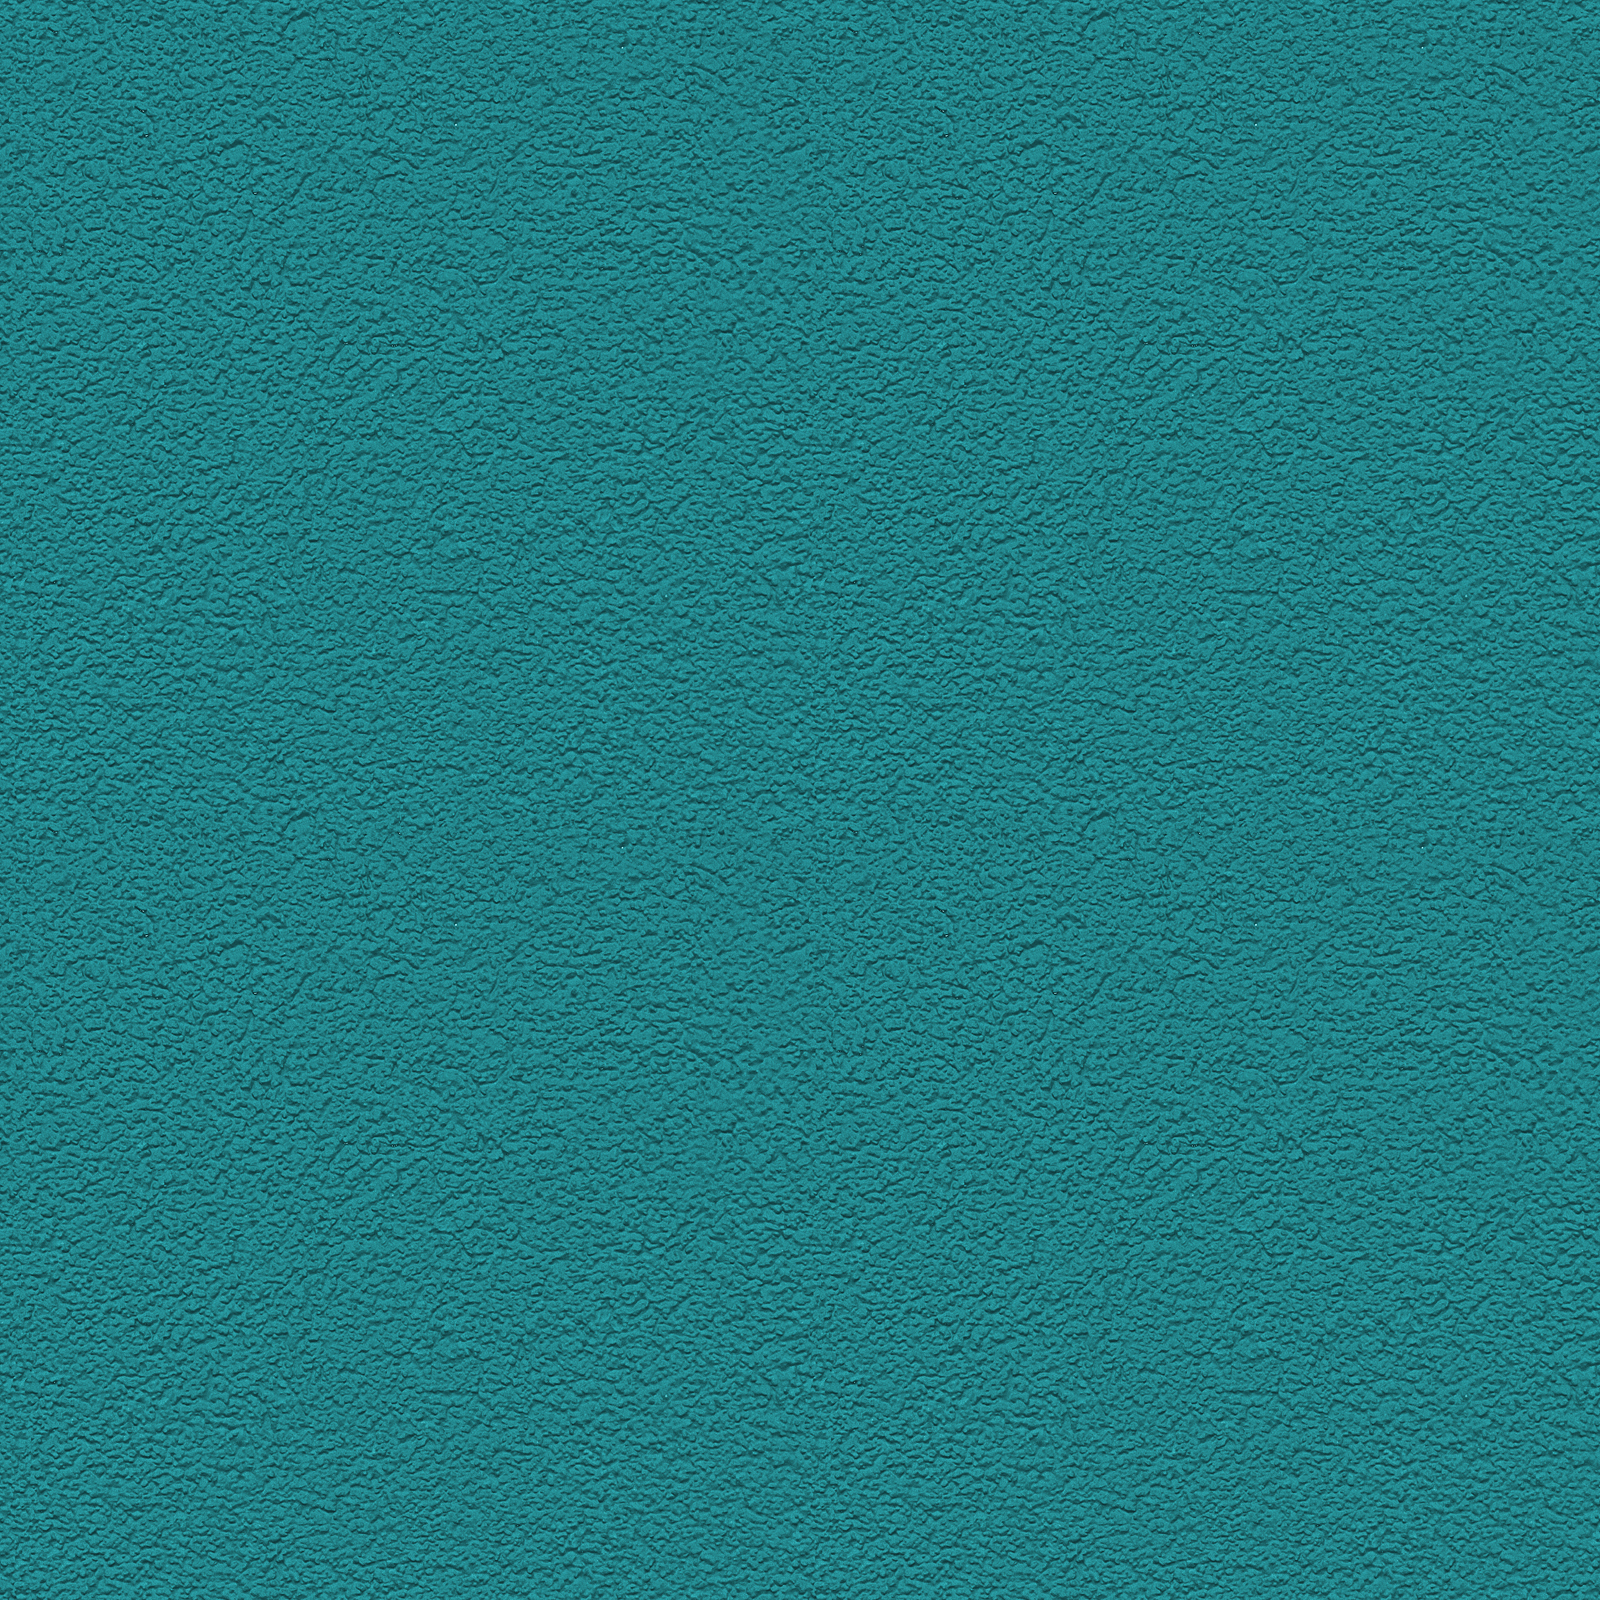 Sea Green Blue Paint